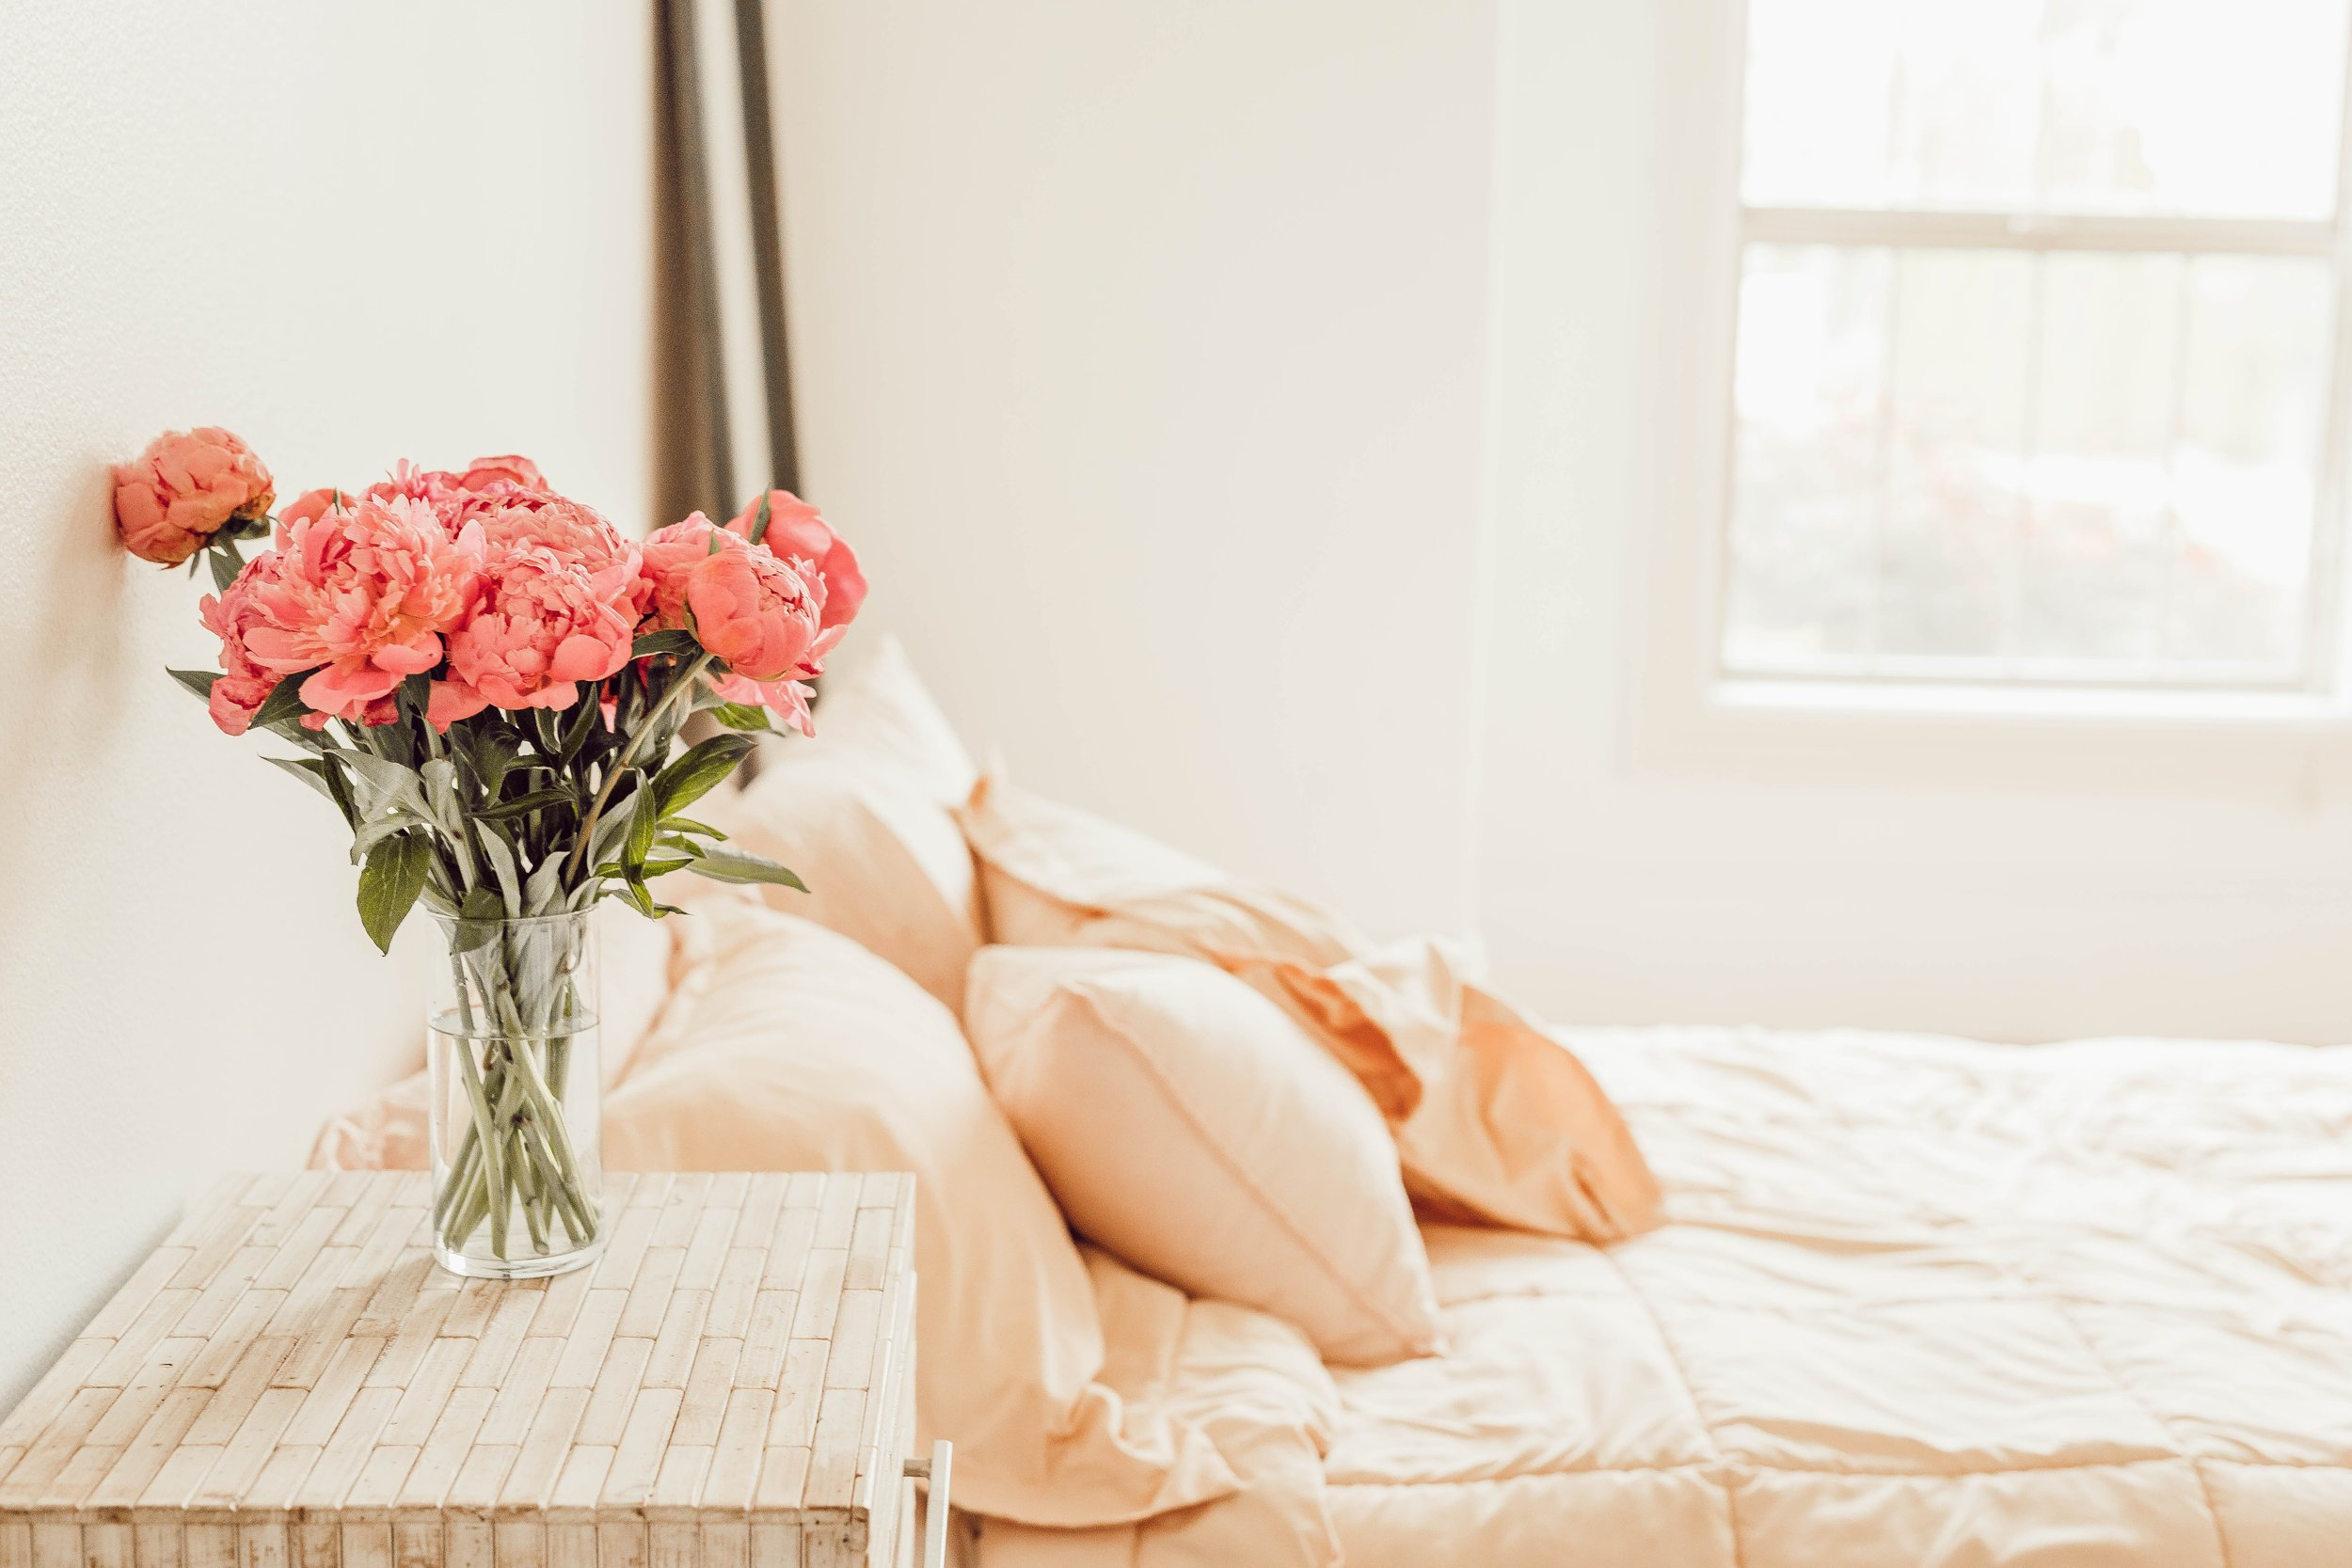 Decorate Room - Flowers.jpg